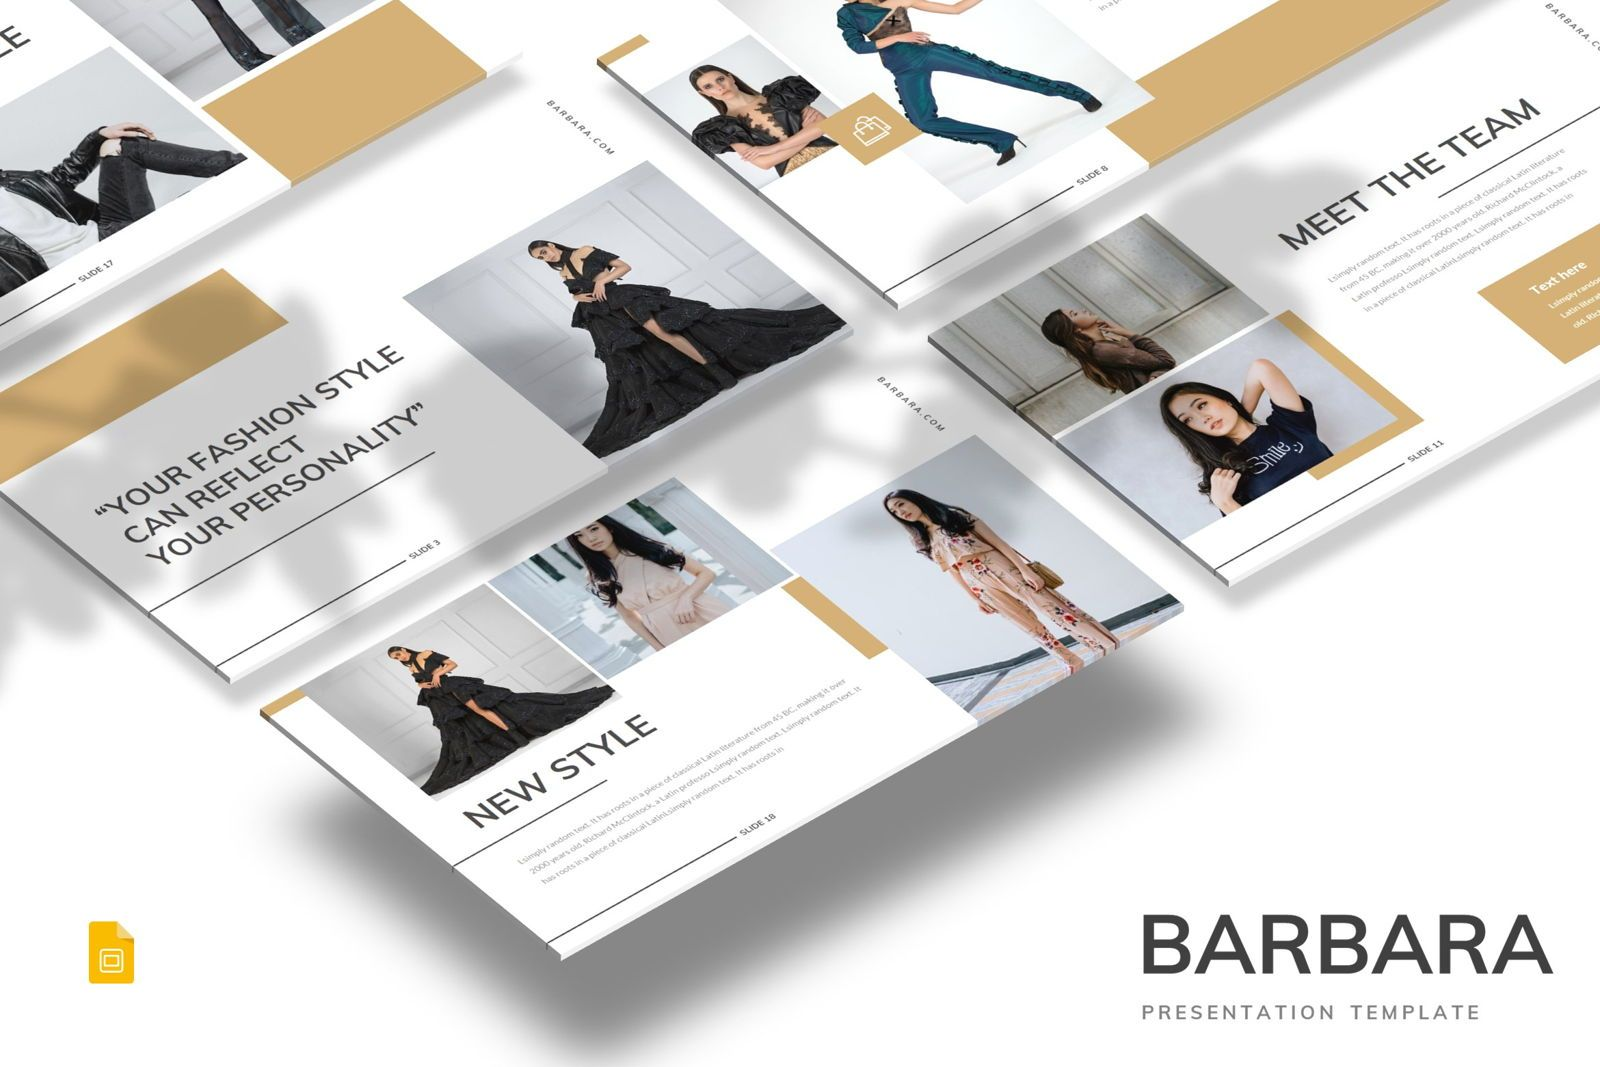 Barbara - Google Slides Template, 07707, Presentation Templates — PoweredTemplate.com